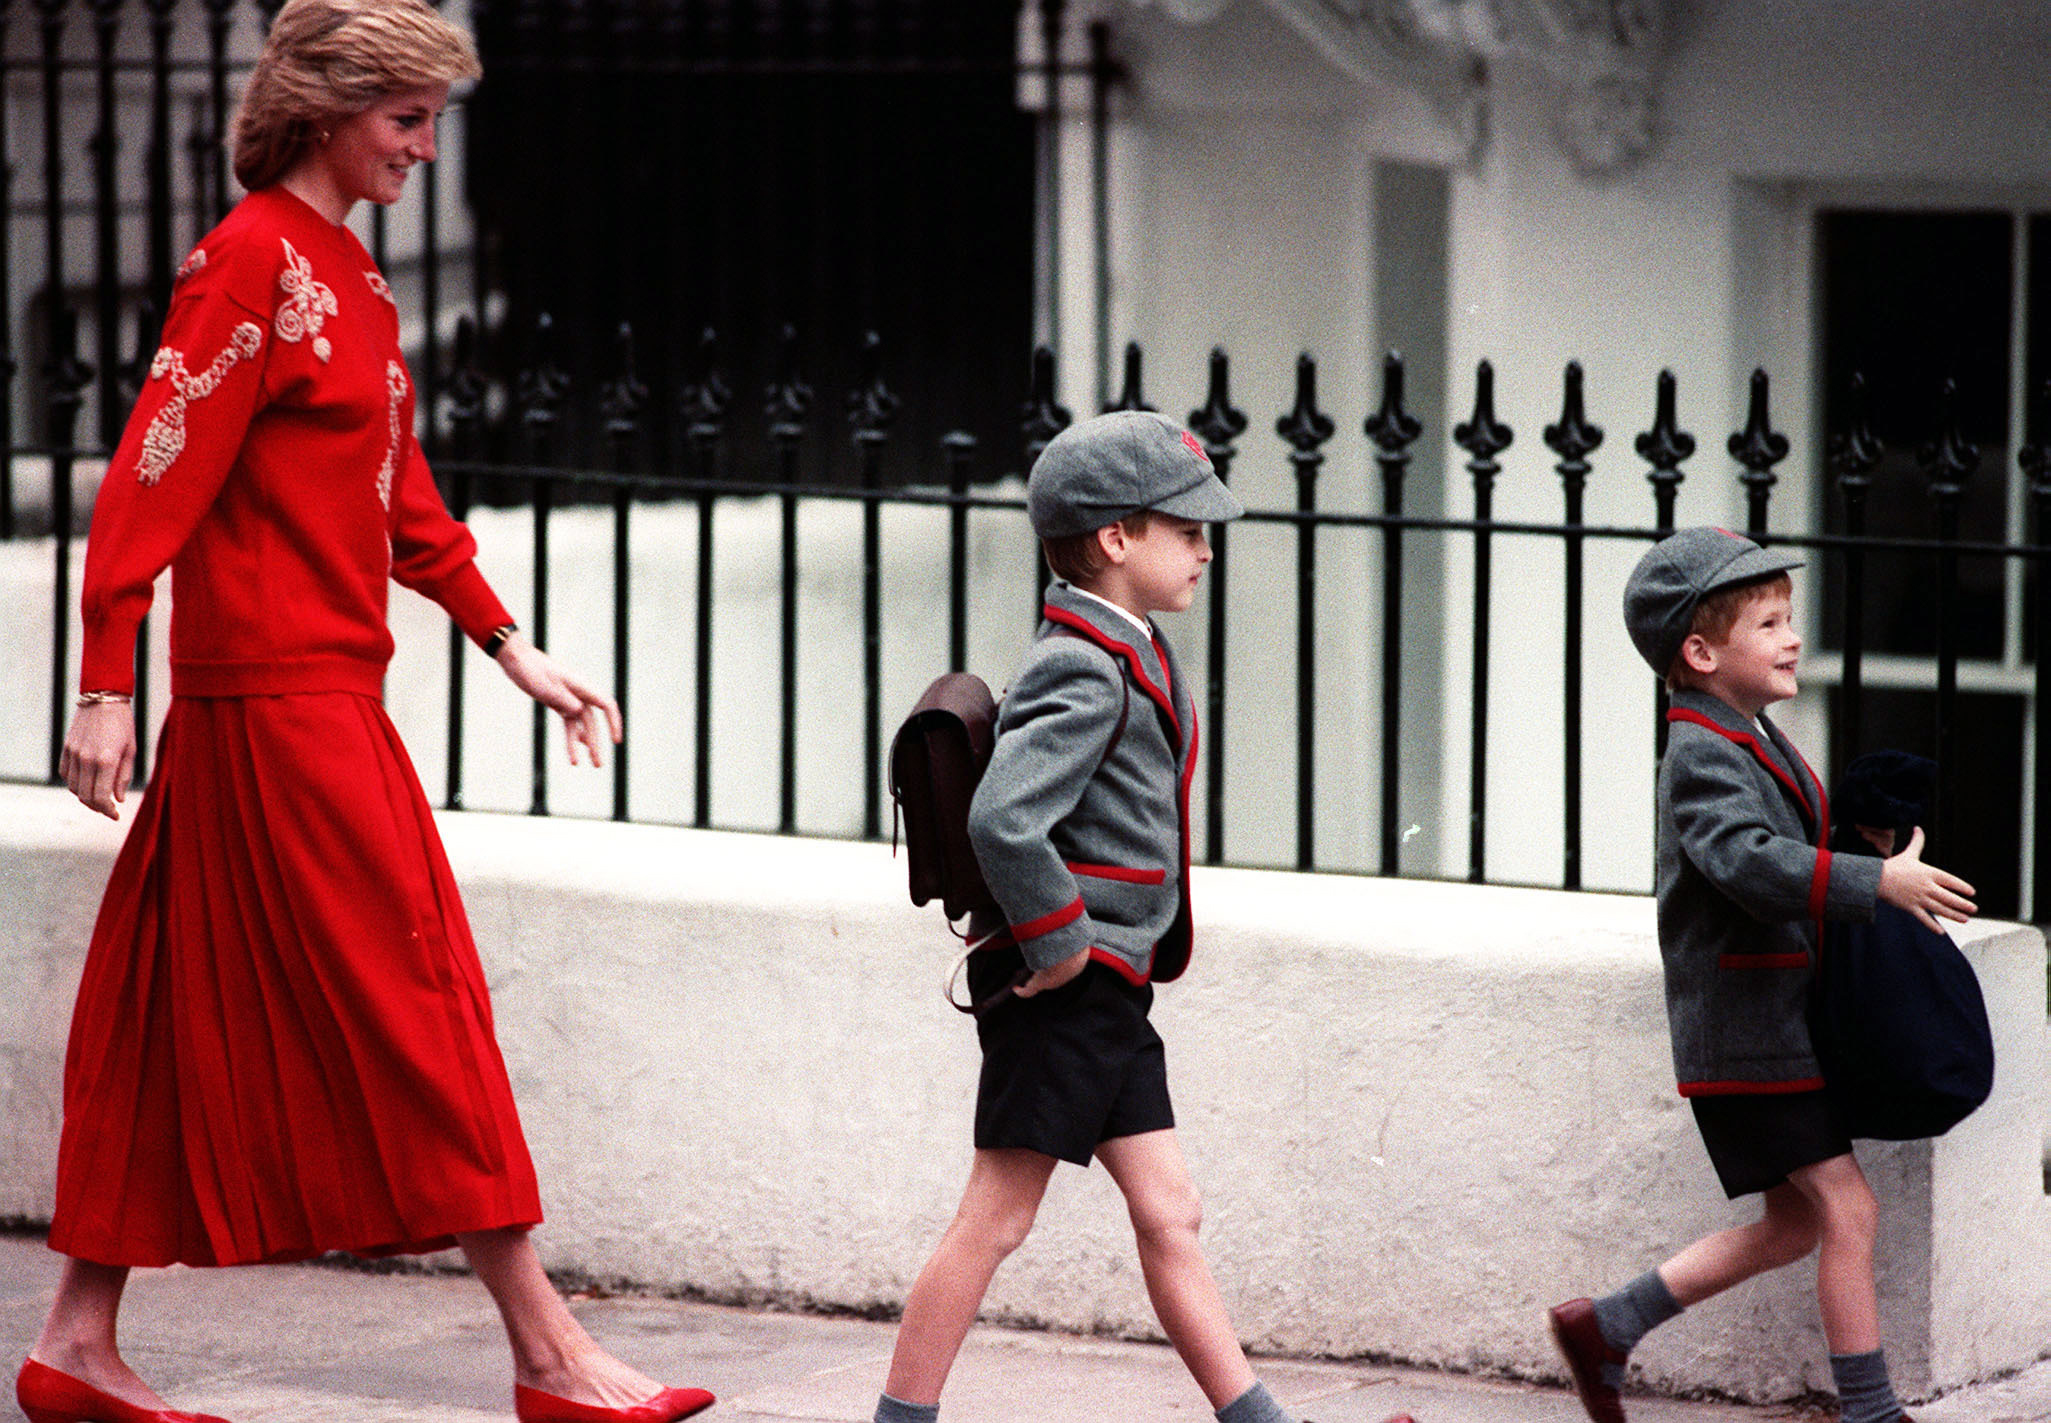 File photo dated Sept. 15, 1989 of the Princess of Wales following her sons Prince Harry (right), five years old, and Prince William, seven, on Harry's first day at the Wetherby School in Notting Hill, West London.